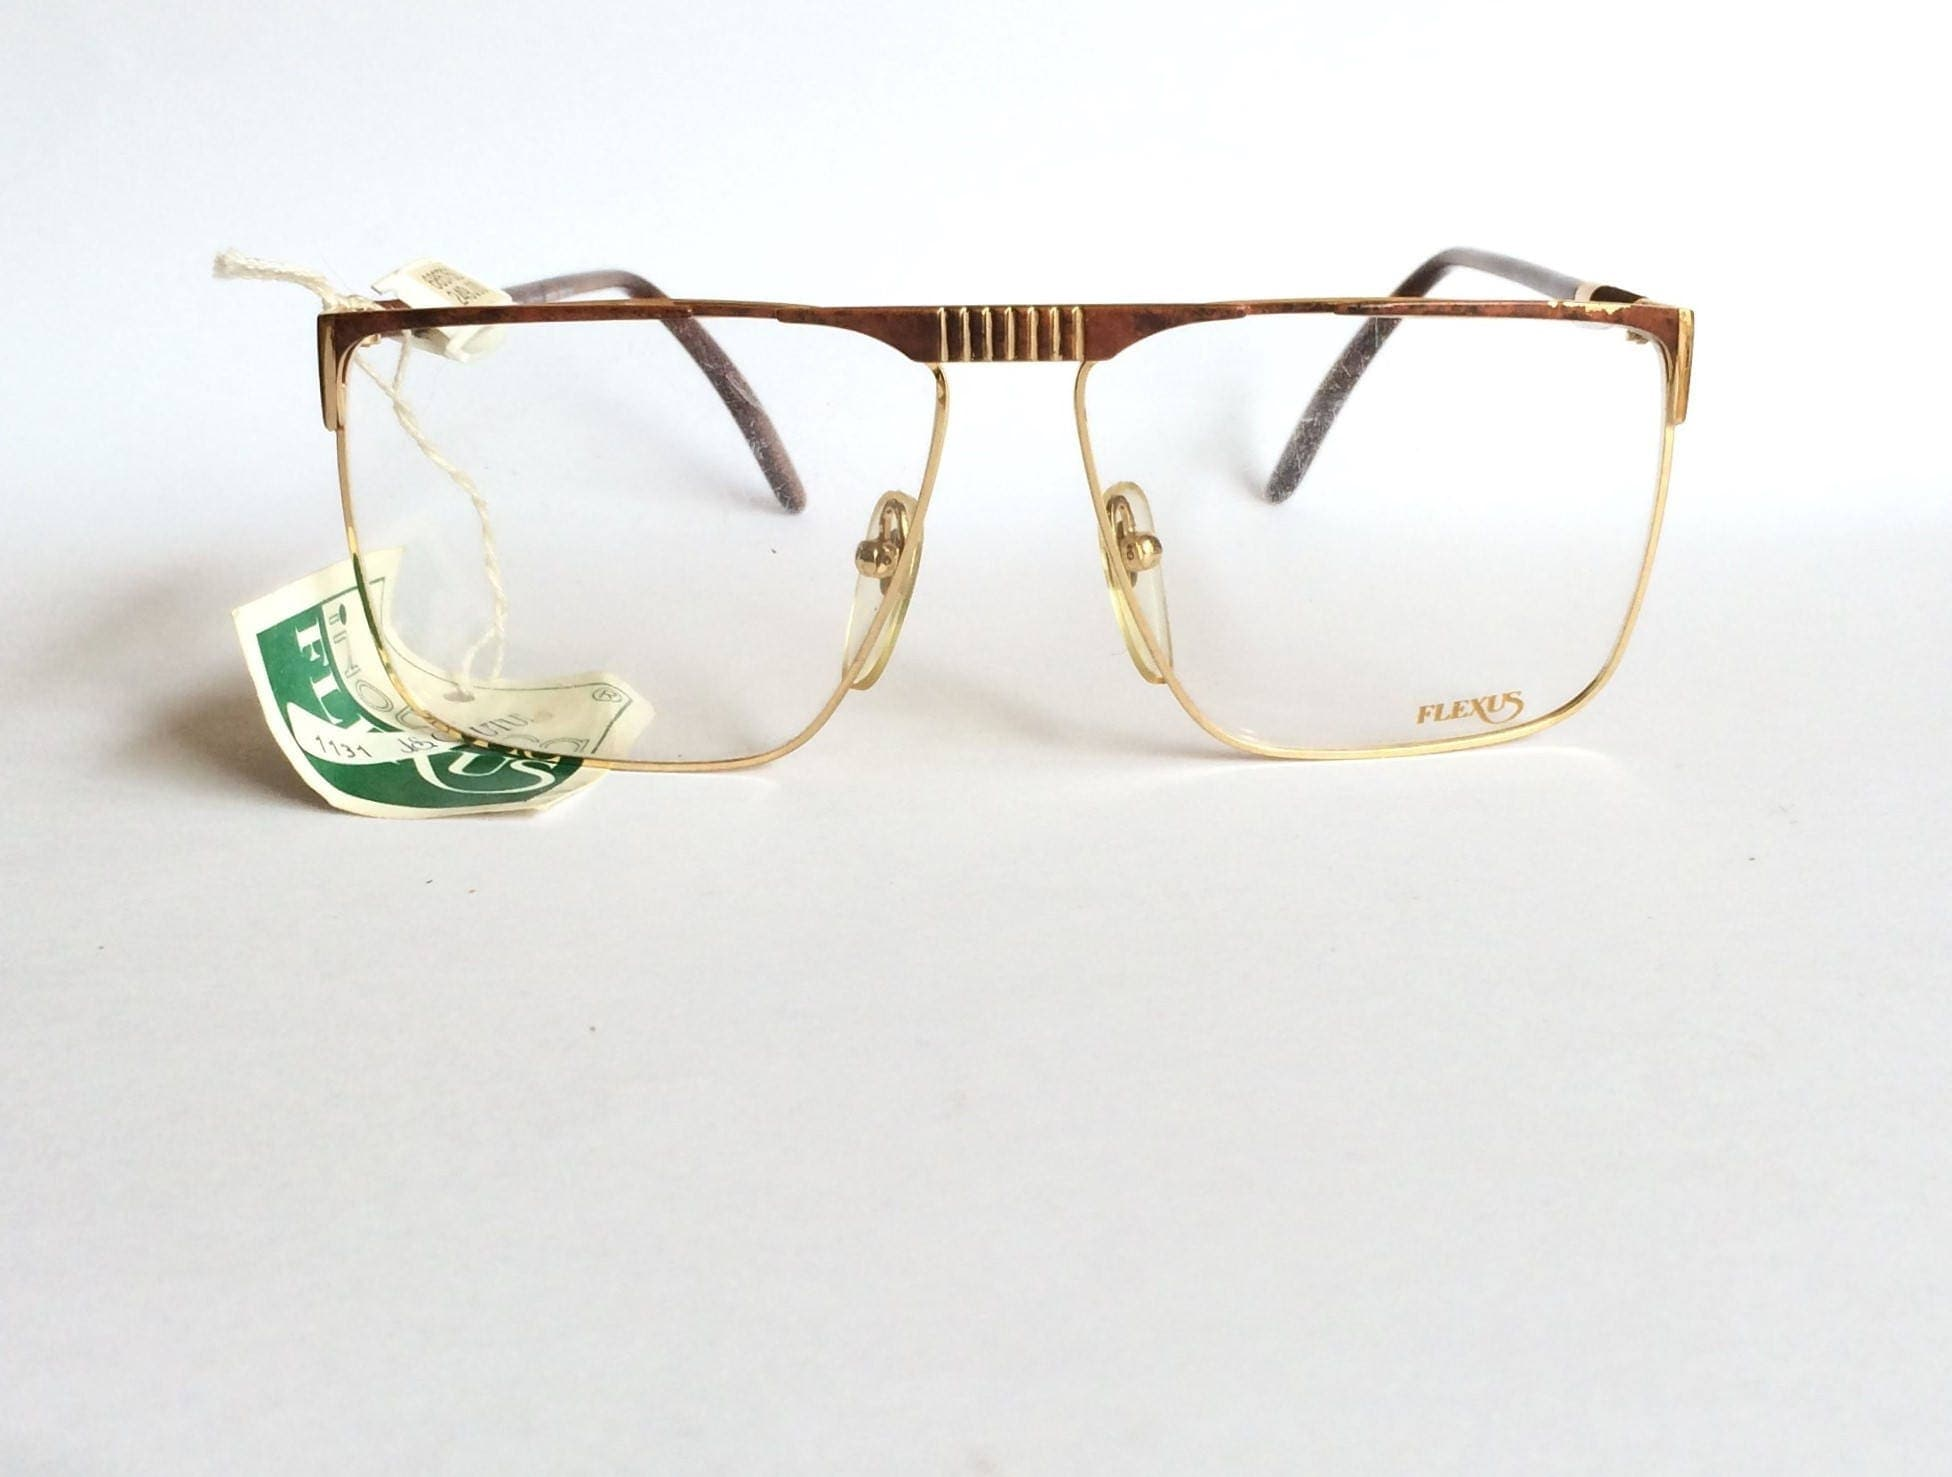 7a9c392d127 Deadstock vintage 1980 s Flexus 592 Flat Top Glasses Pop Art coloured frame  made in Italy by